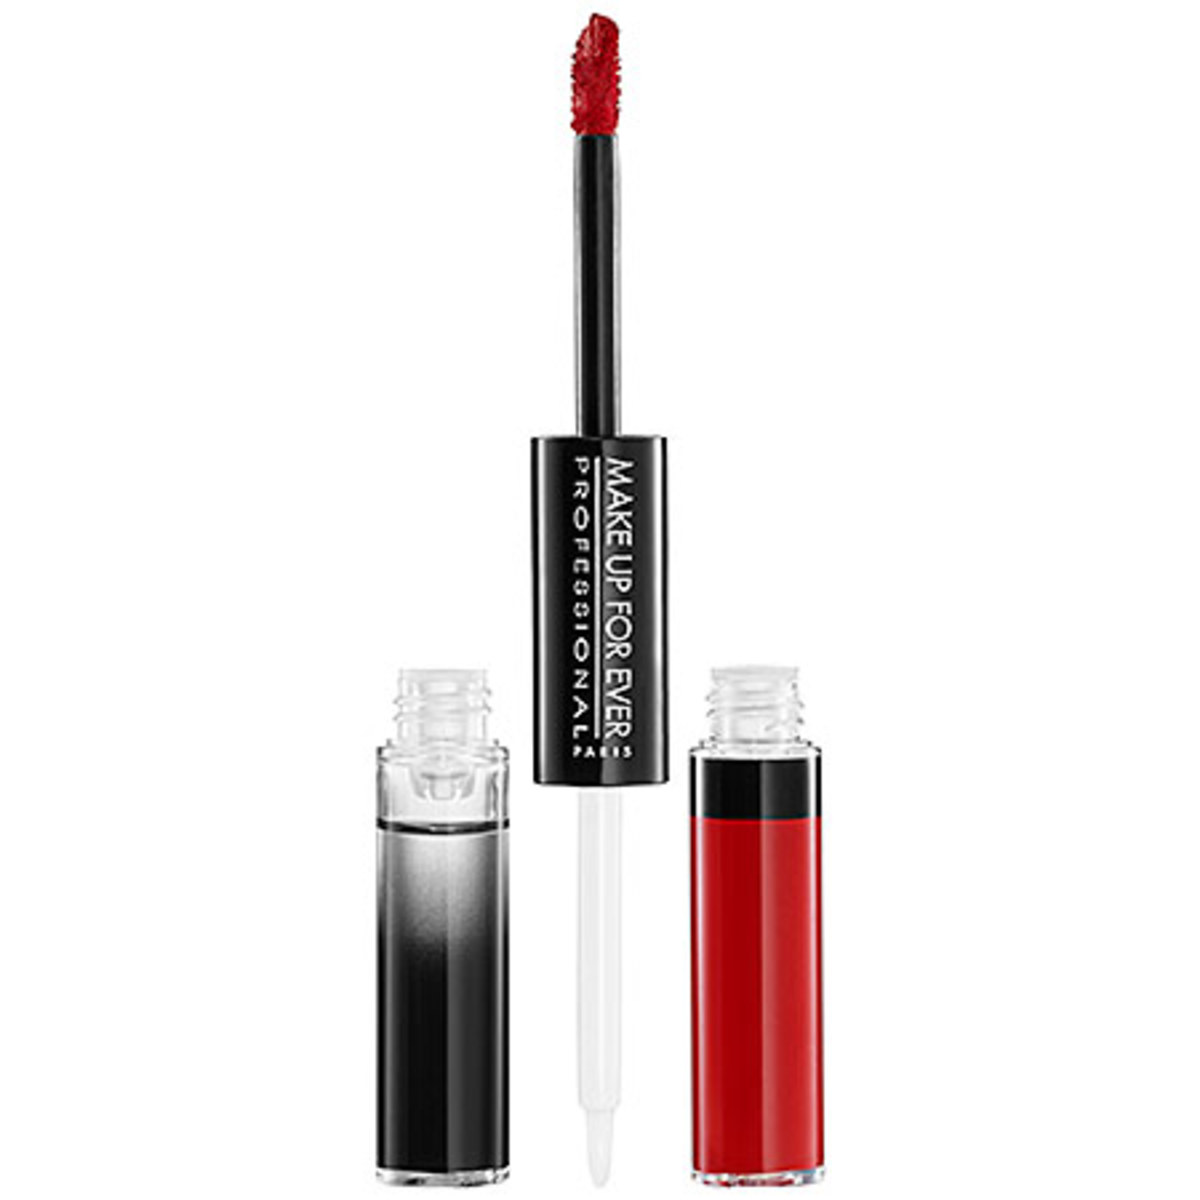 Make Up For Ever Aqua Rouge in 8 Iconic Red